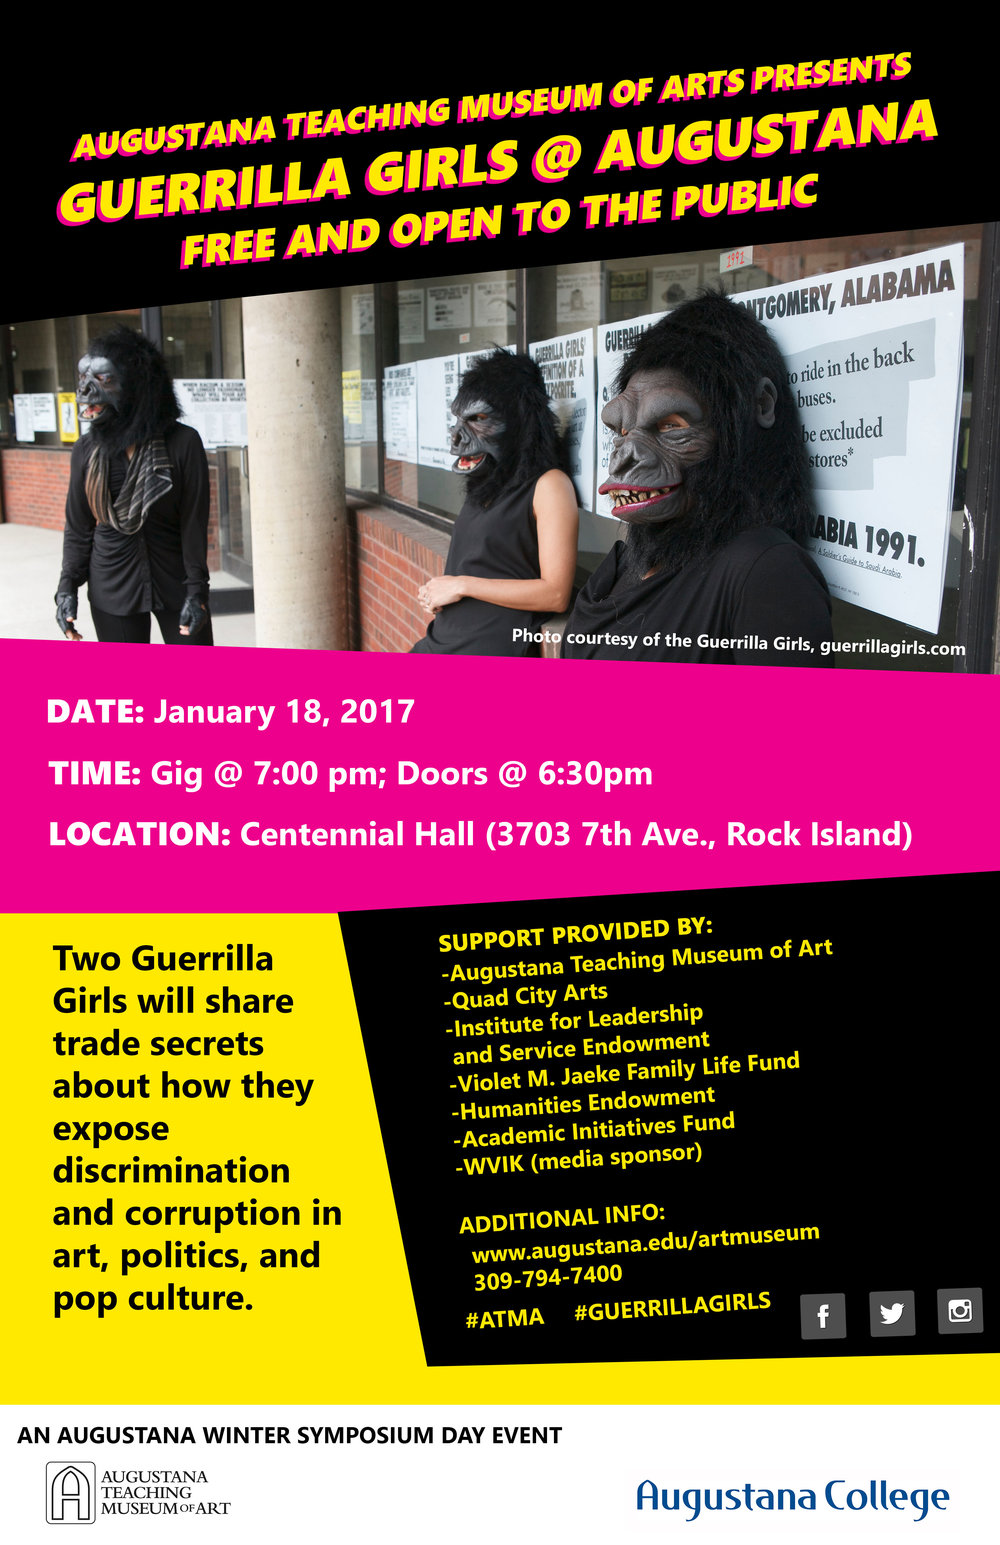 Guerrilla Girls @ Augustana. Designed by Comet Blecha.